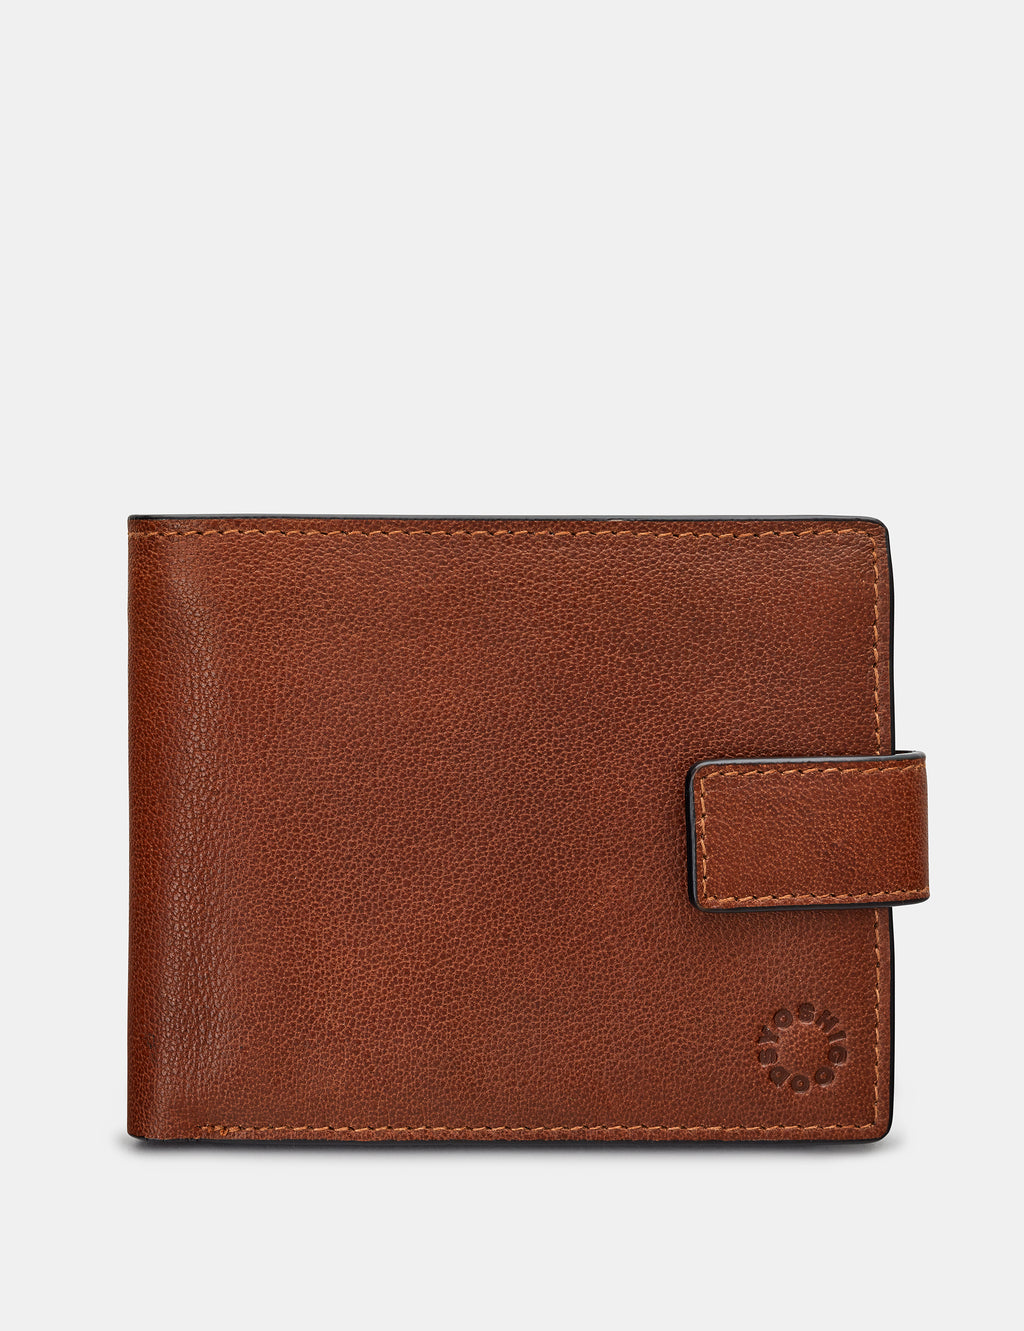 Extra Capacity Leather Wallet with Tab